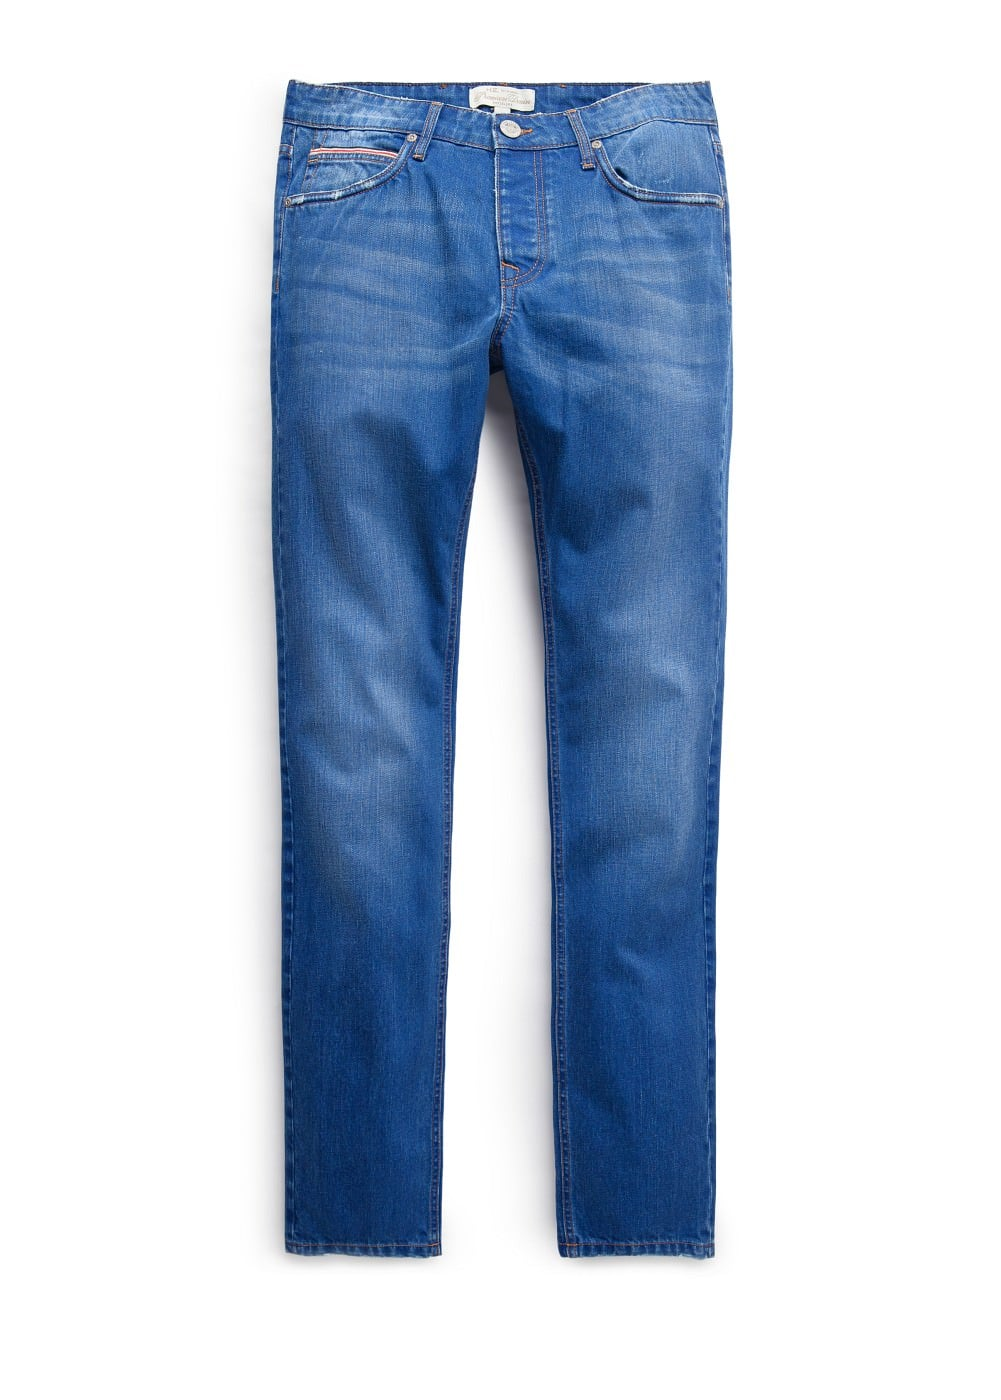 Slim-fit Premium ink color Steve jeans